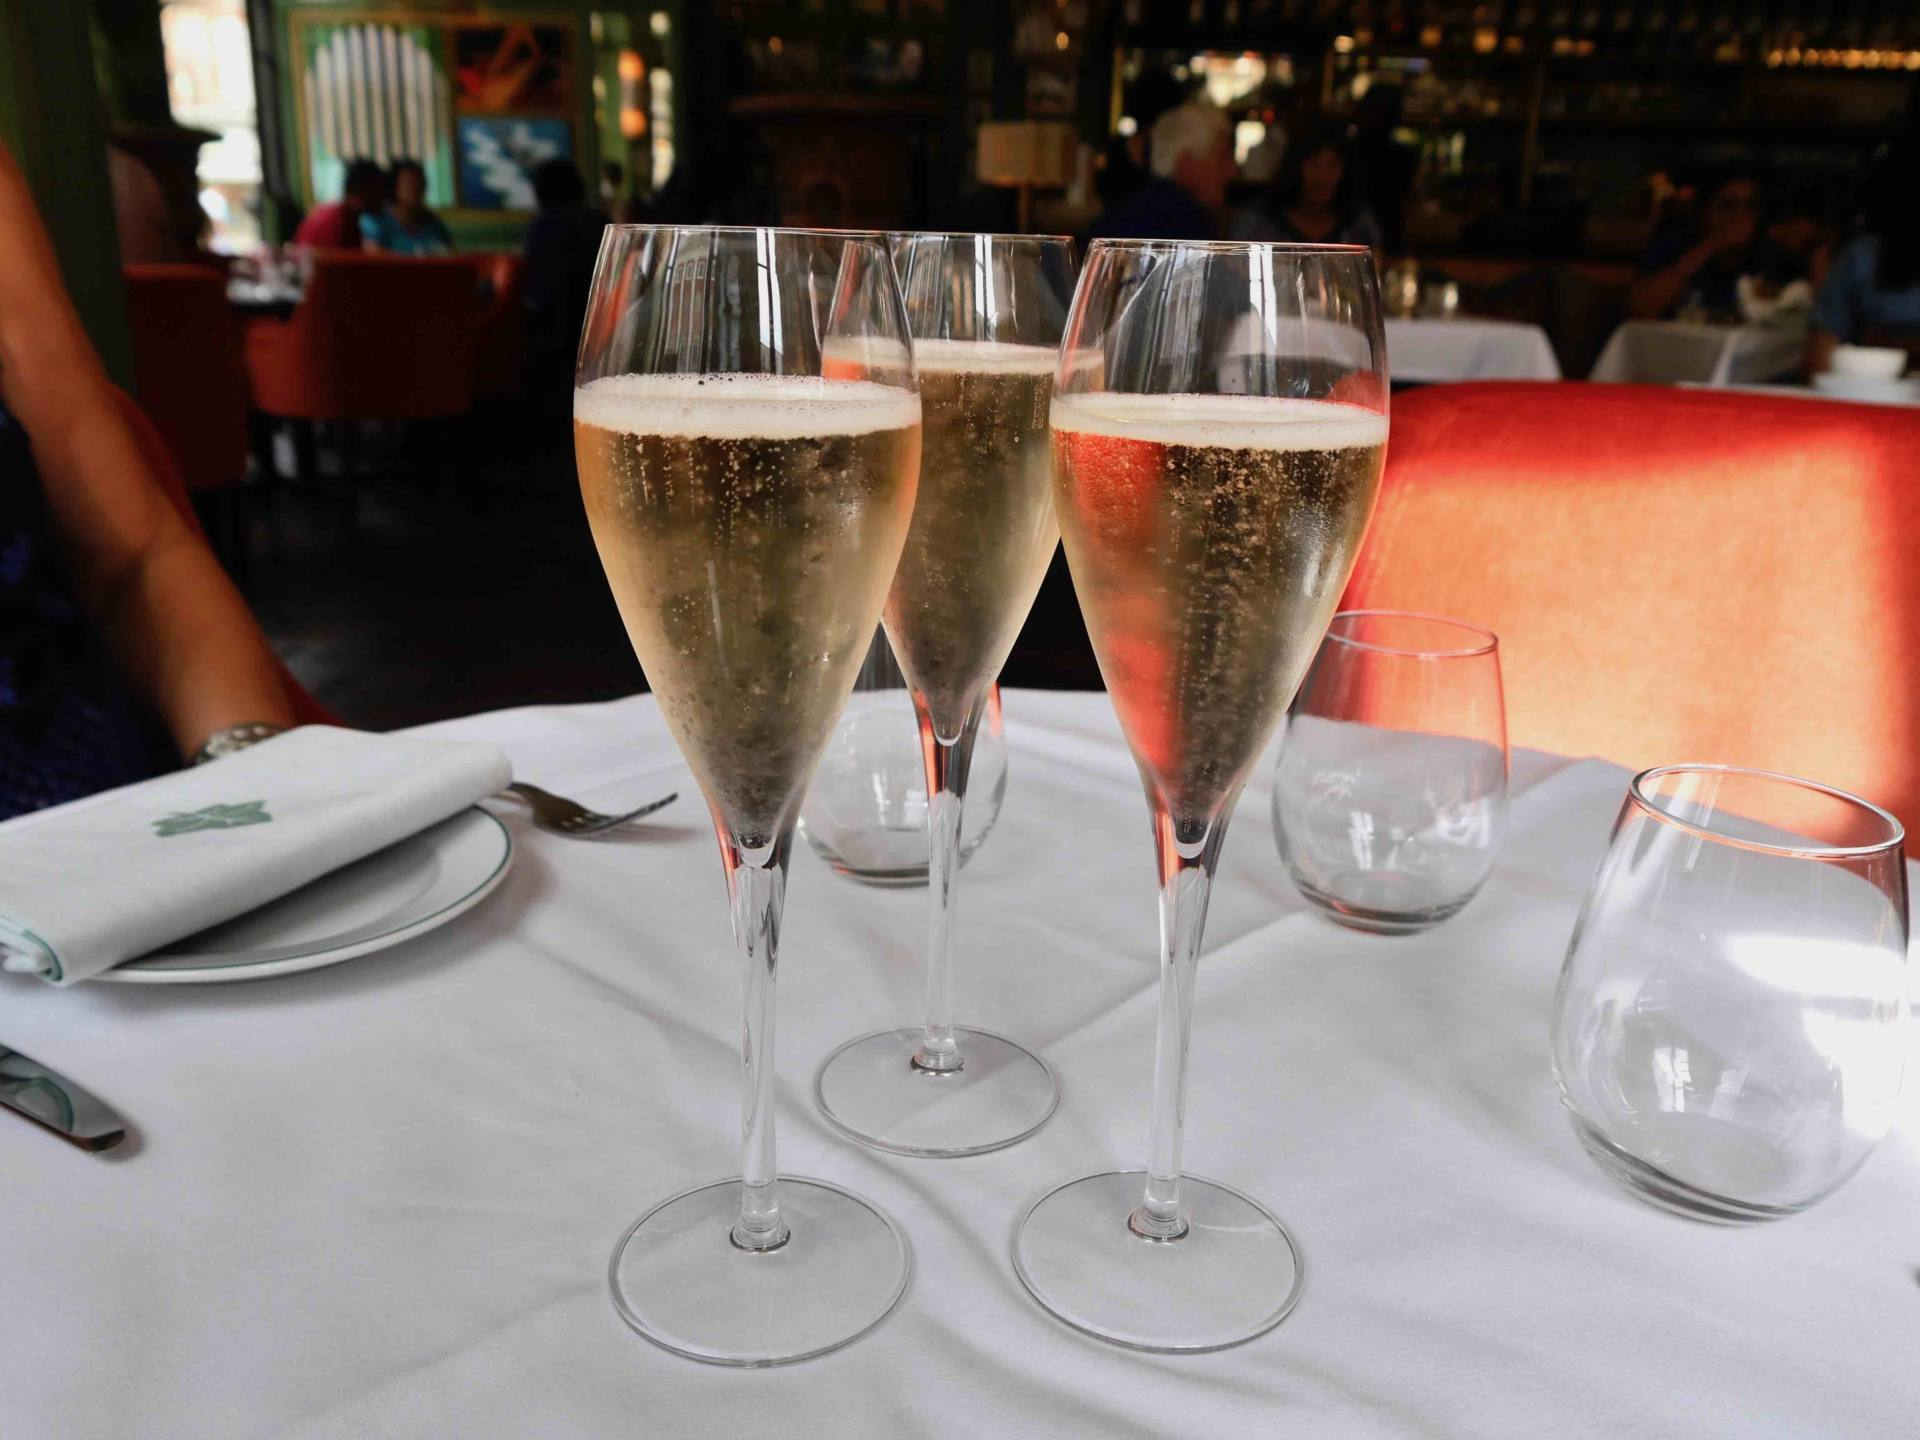 Champagne flutes | Afternoon tea at The Ivy St Helens Square, York